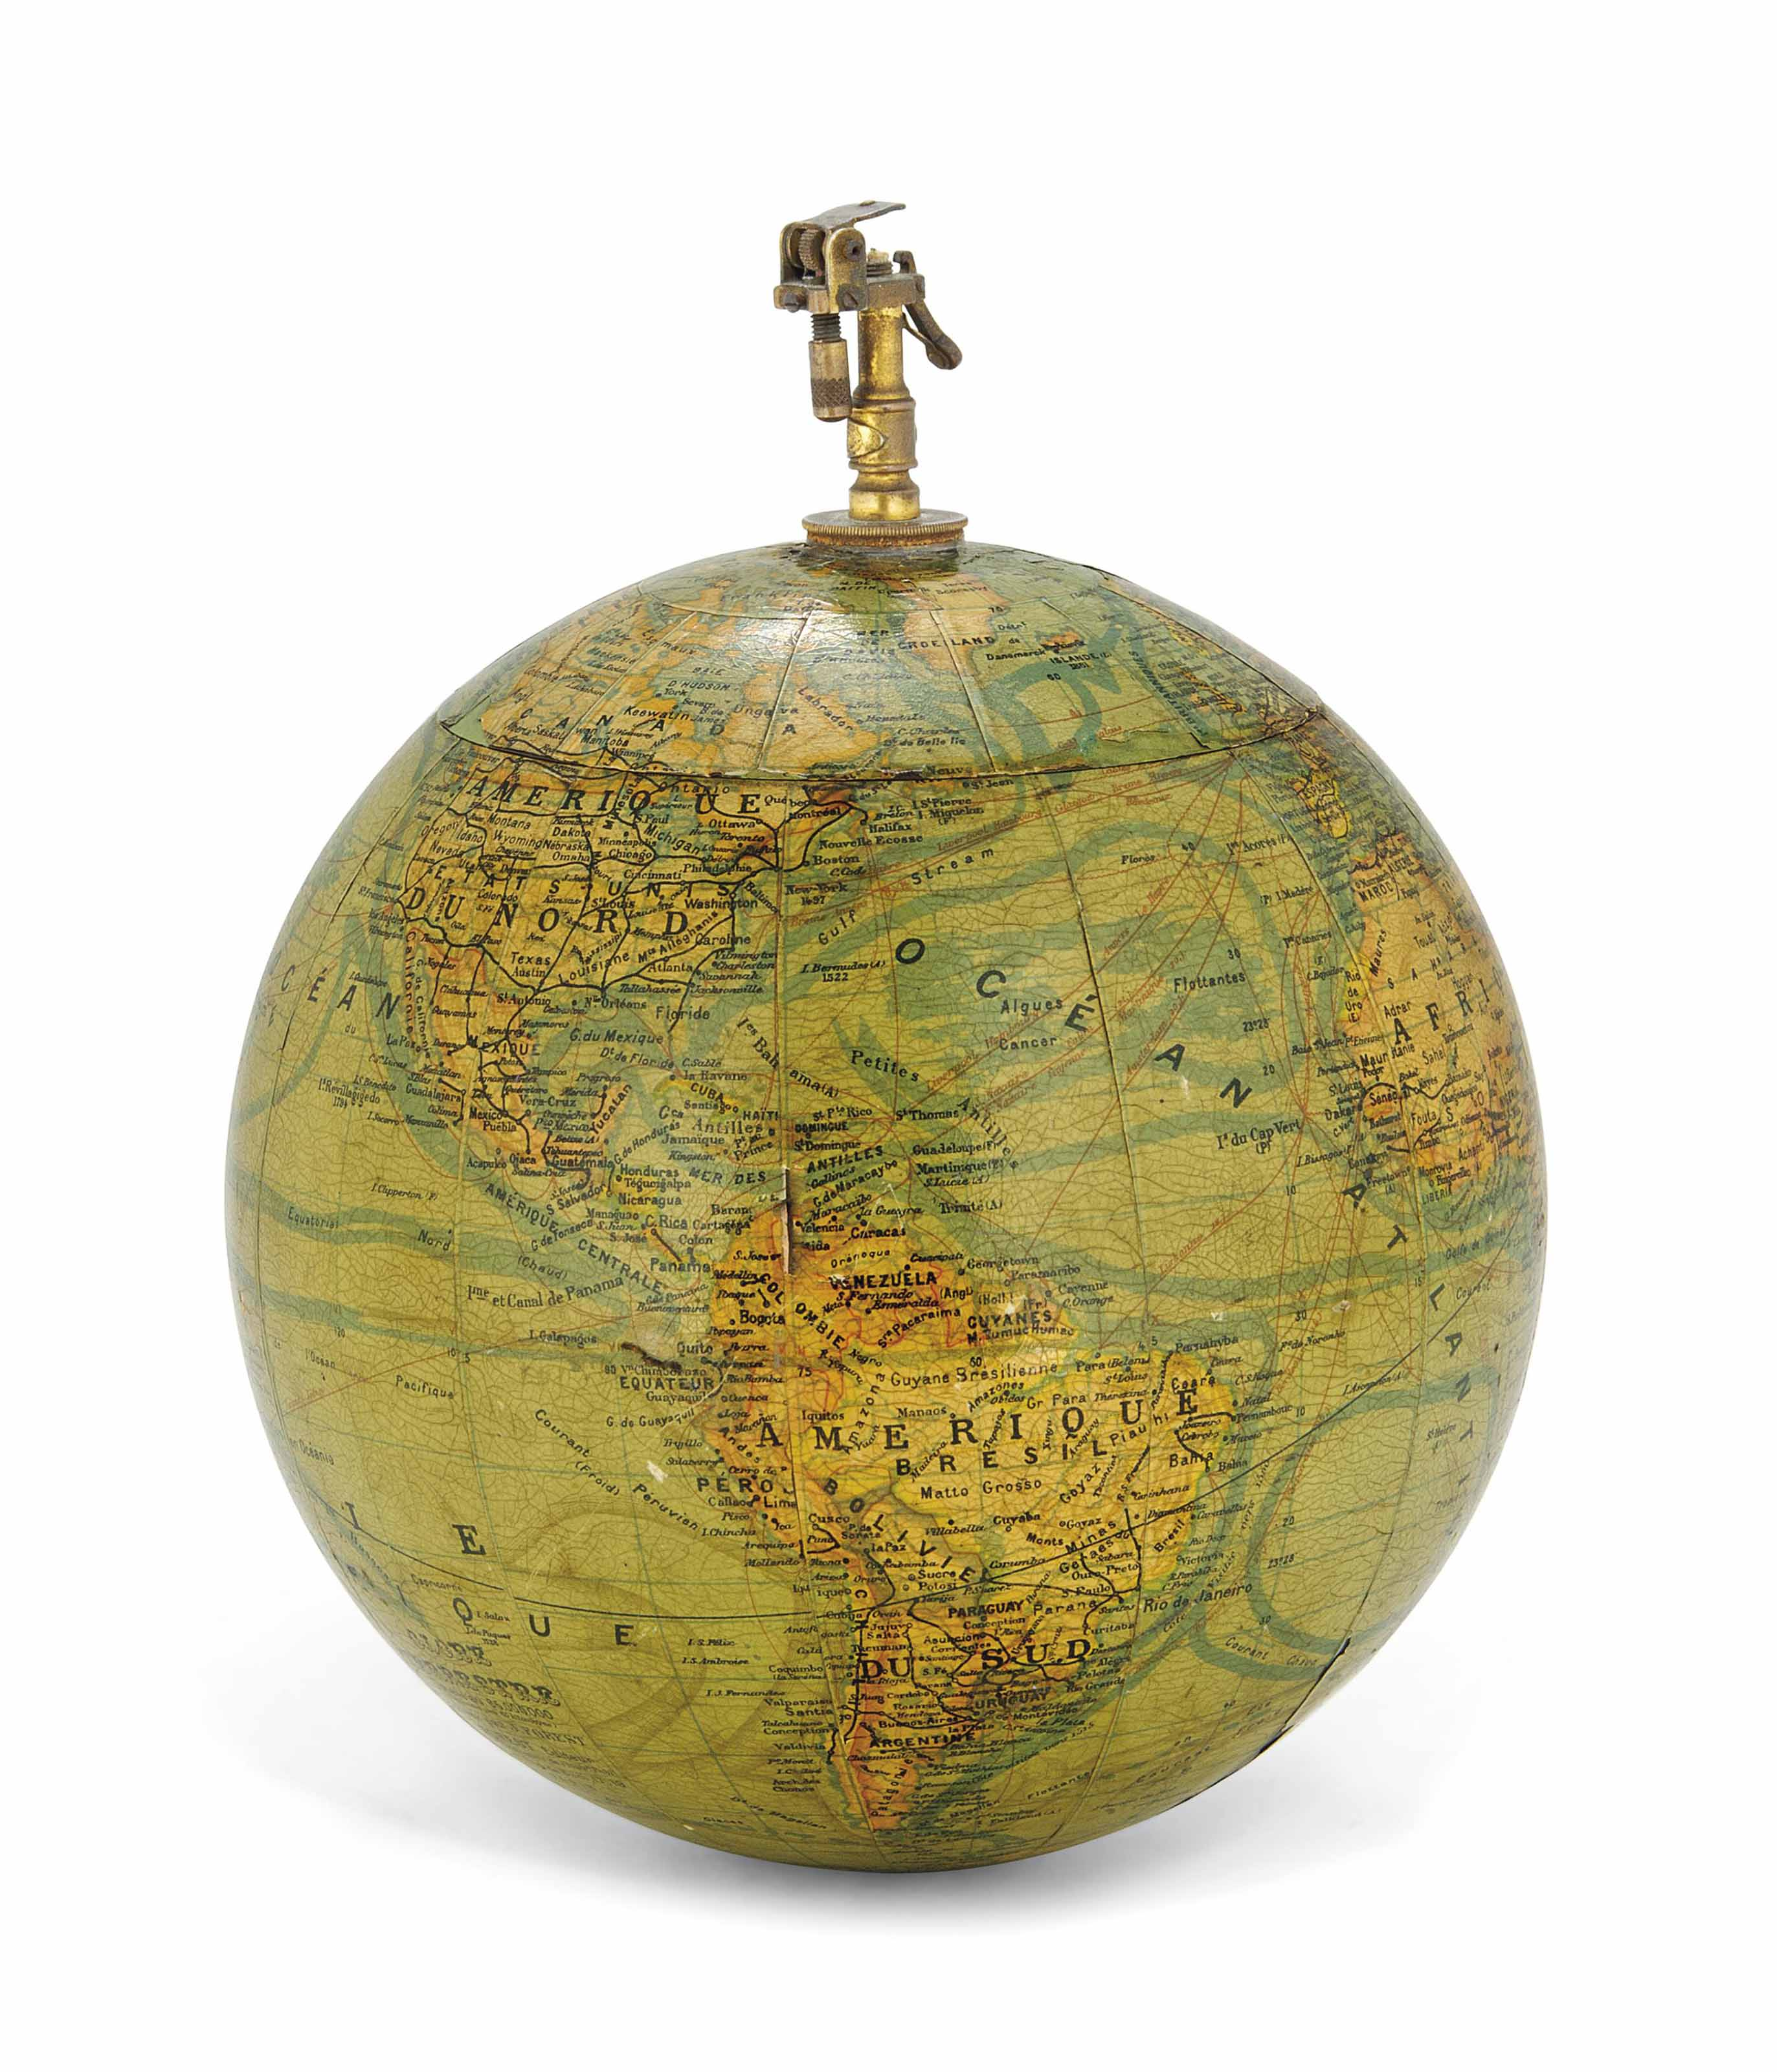 A FRENCH GLOBE TABLE COMPENDIU